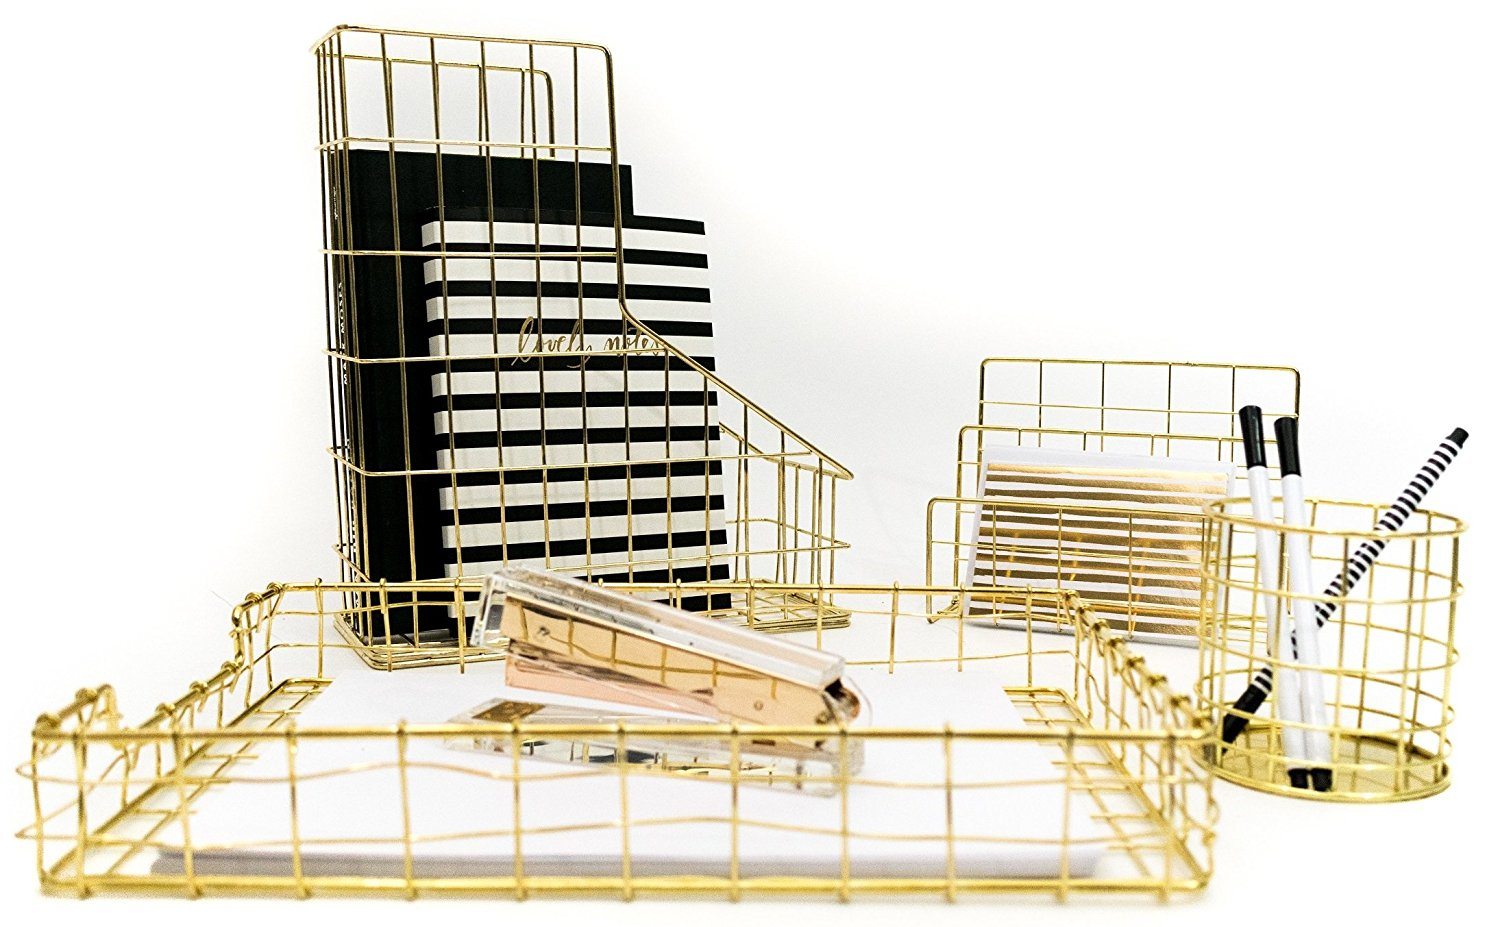 Blu Monaco Gold Desk Organizer - 4 Piece Desk Accessories Set - Letter - Mail Organizer, Paper - Document Tray, Pen Cup, Magazine File Holder - Gold Office Supplies Wire Stationery Decor